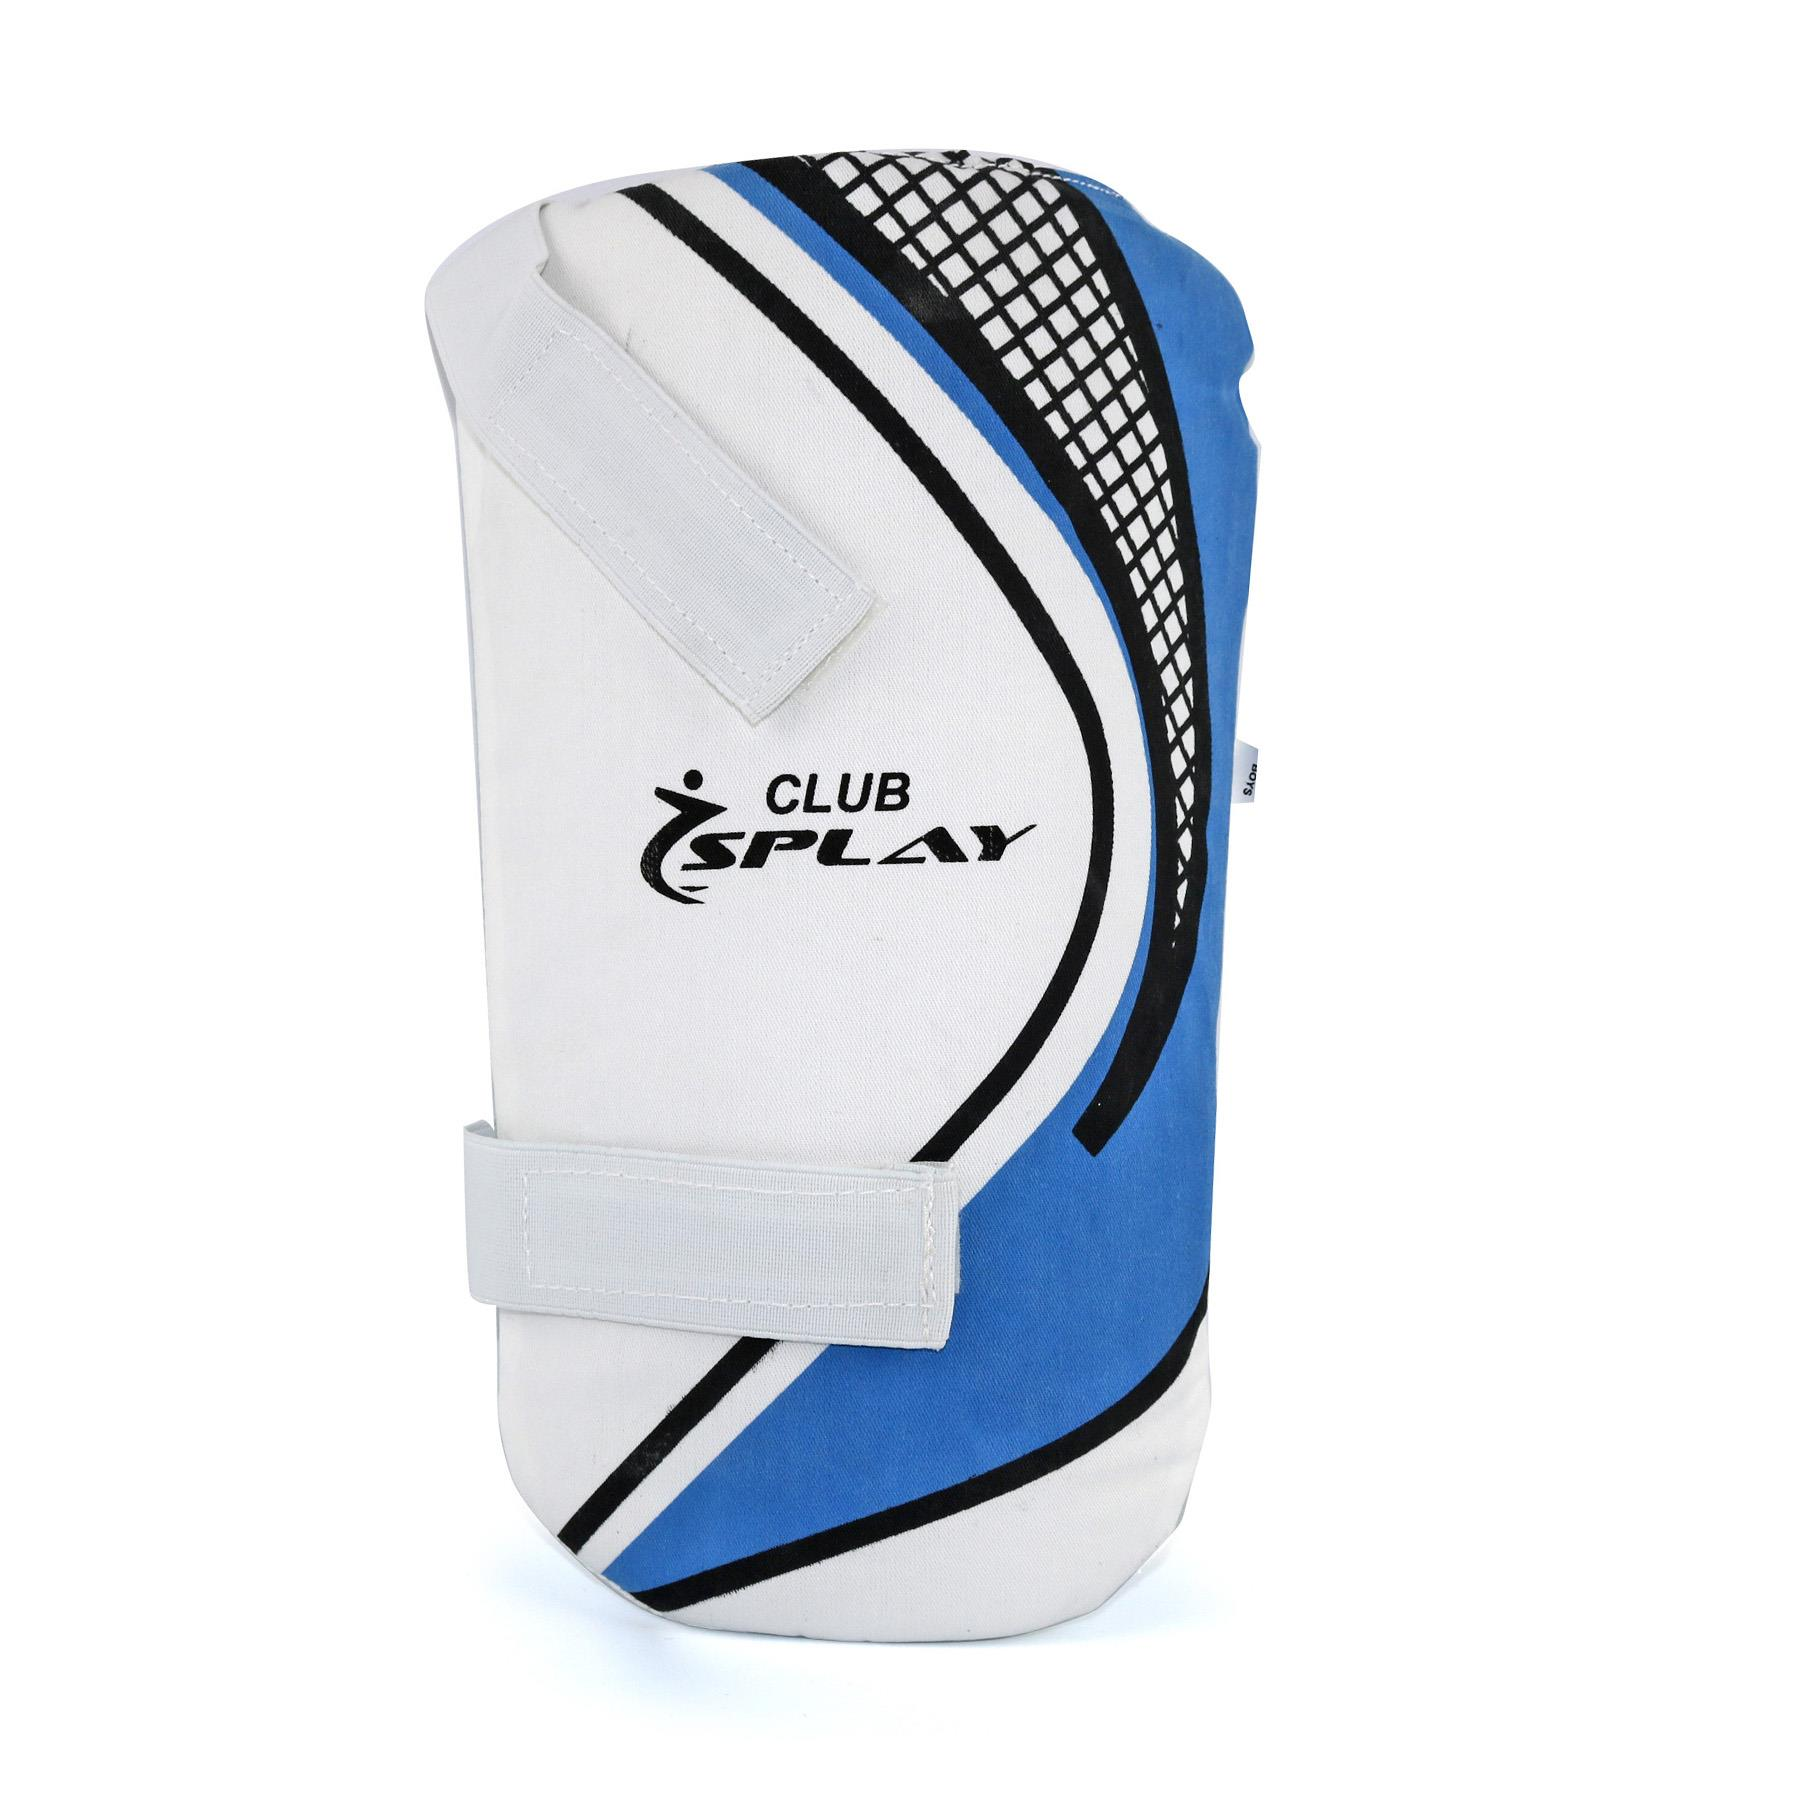 Cricket Arm Guard Forearm Protection Cricket Batting ArmGuard Youth